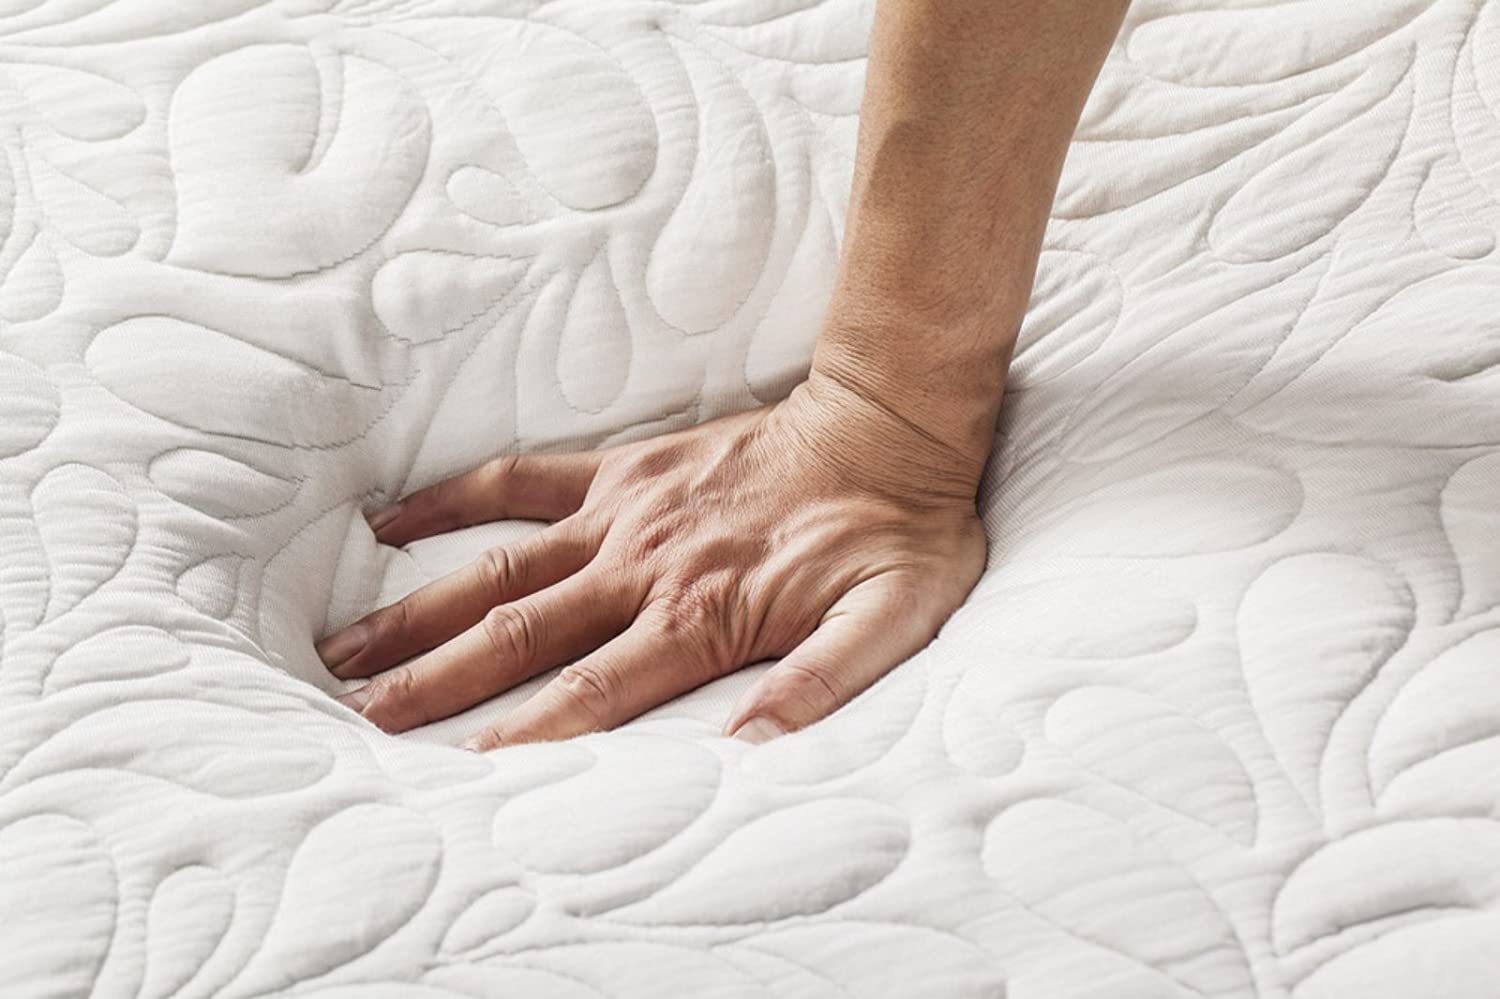 What are the great features of Live and Sleep mattress?